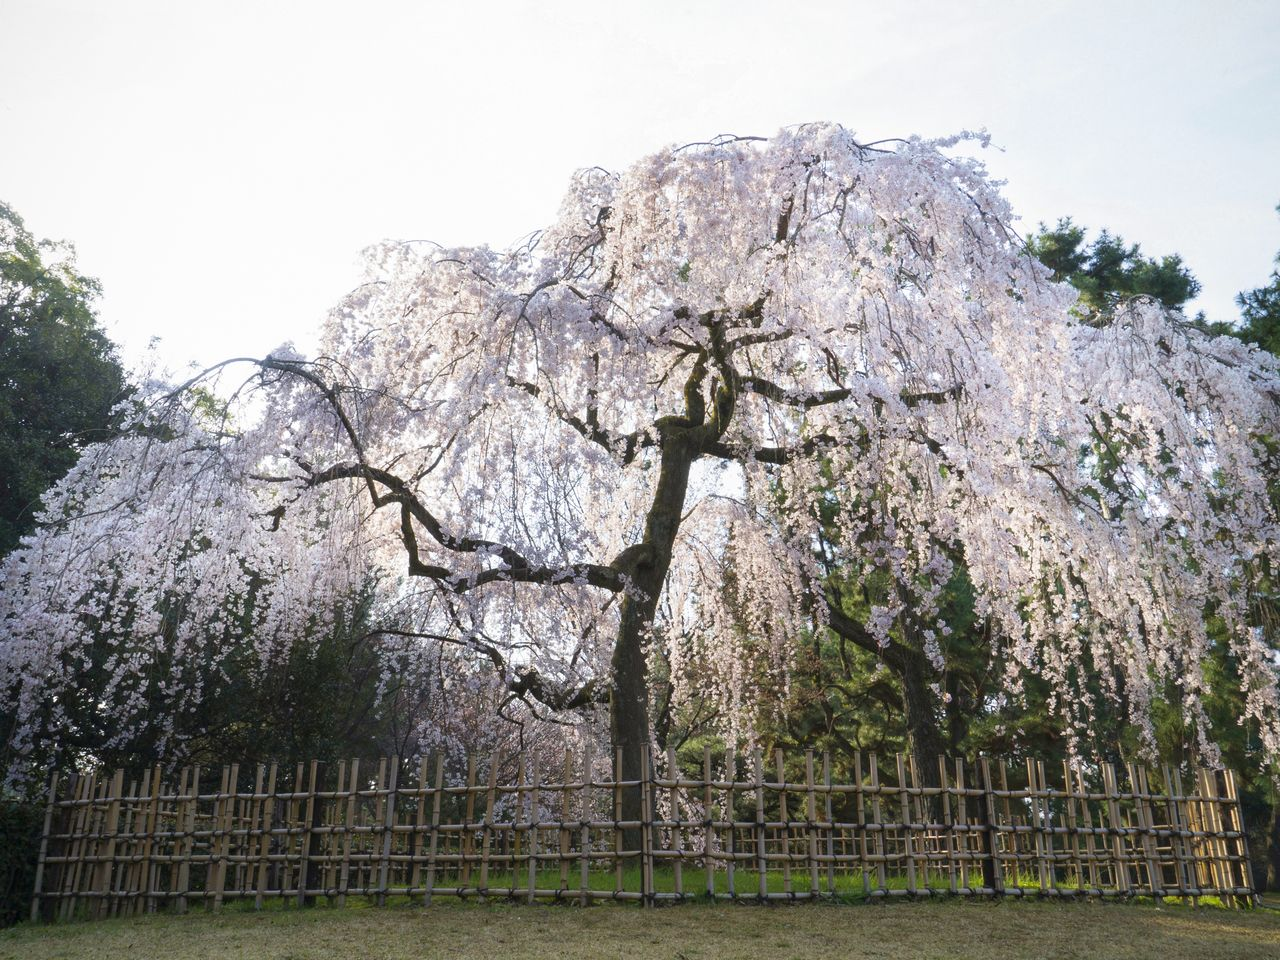 The tree combines an imposing array of branches with delicate, beautiful blossoms.